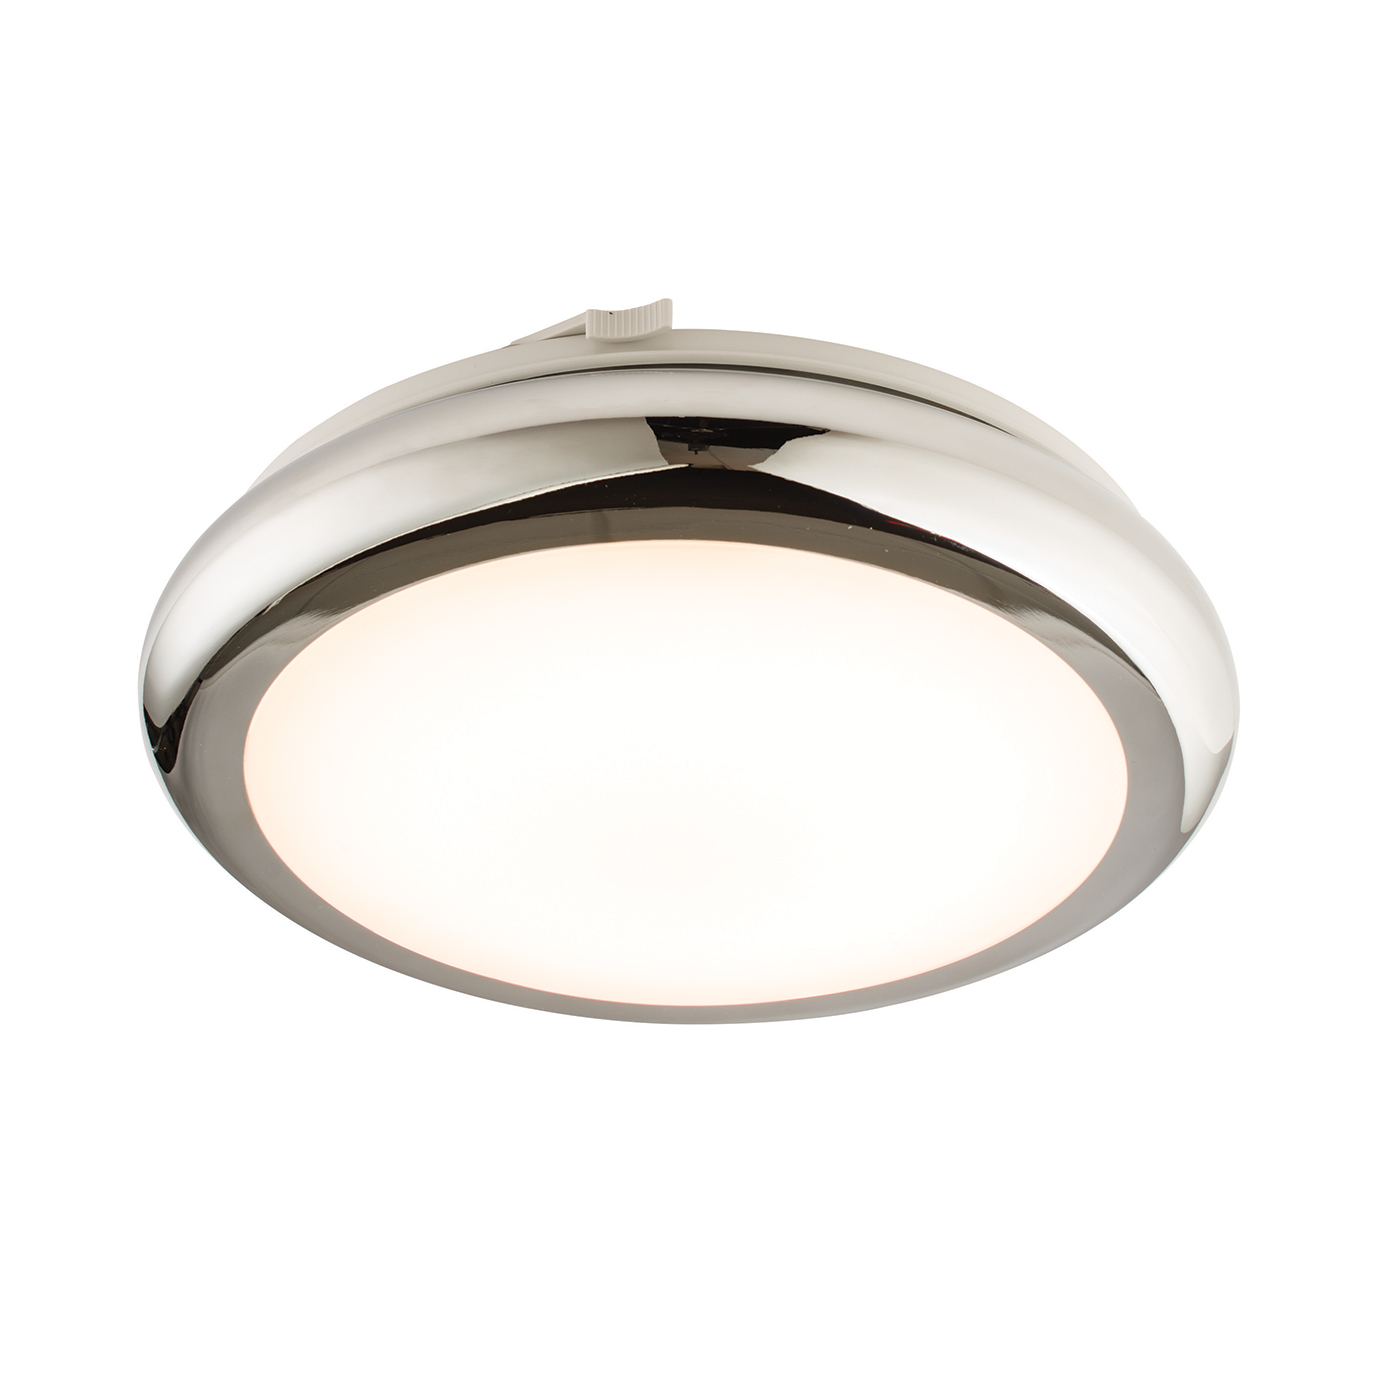 Endon Sigma LED 290mm flush bathroom ceiling light IP44 8W chrome polypropylene